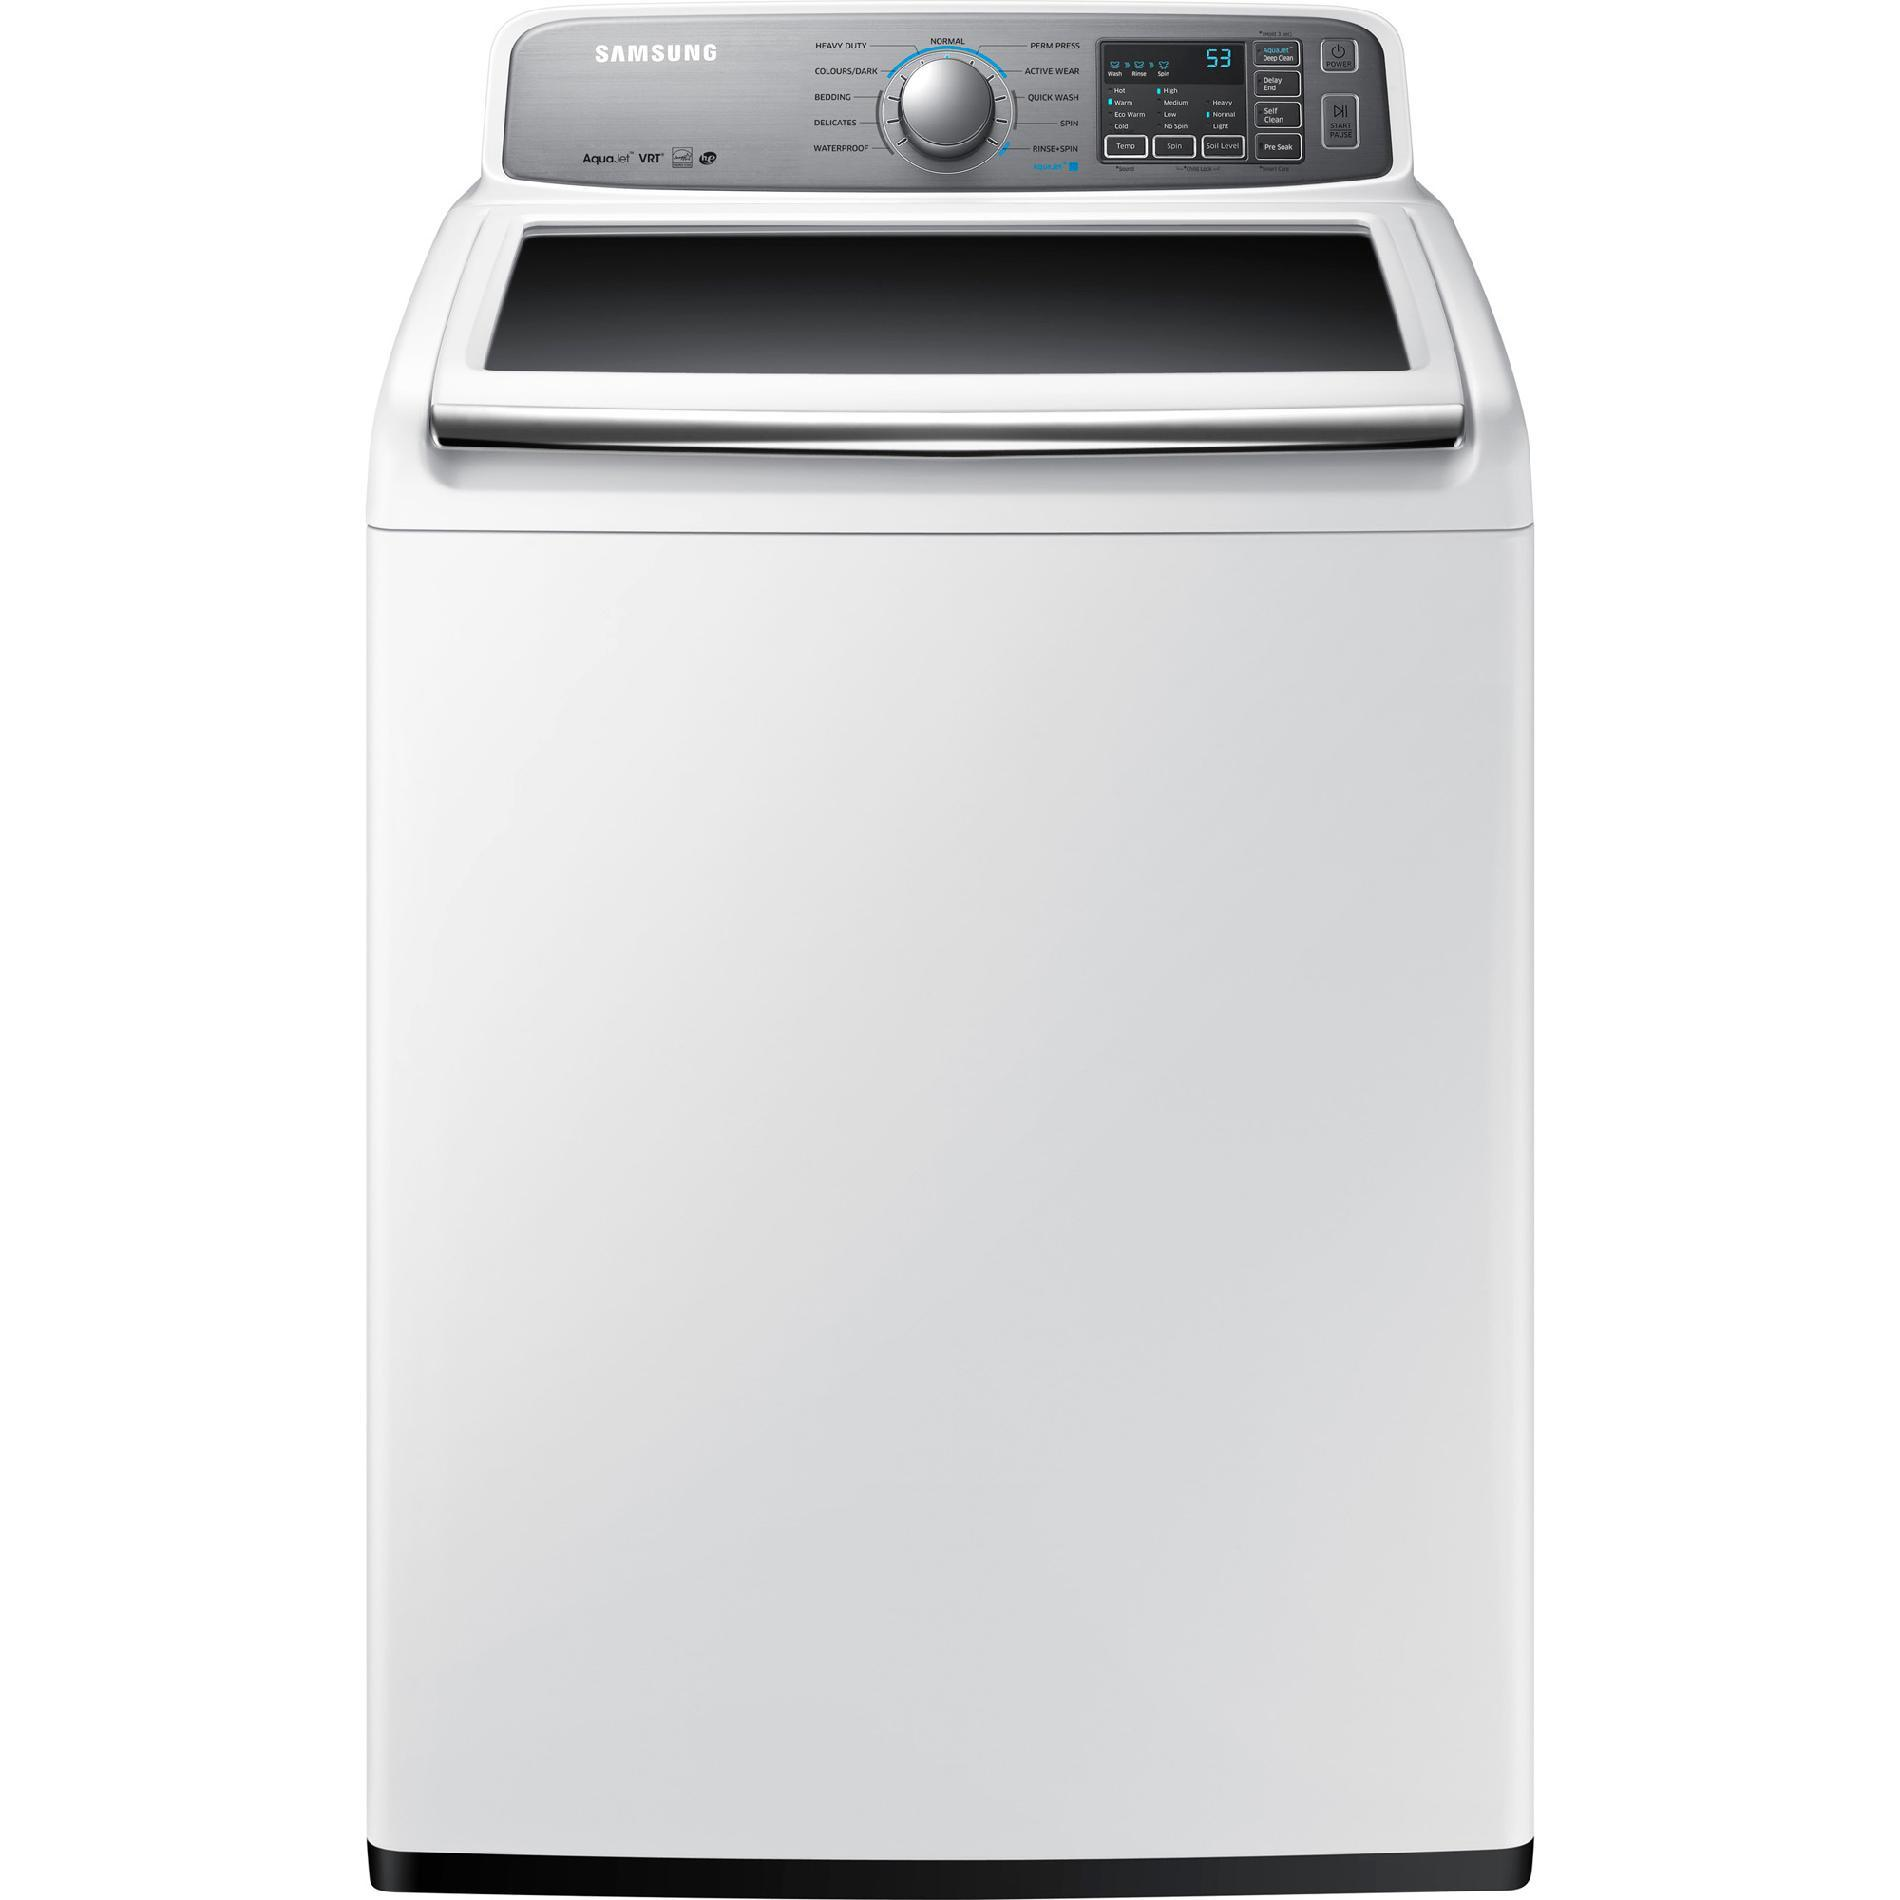 Samsung WA48H7400AW 4.8 cu. ft. Top-Load Washer - White